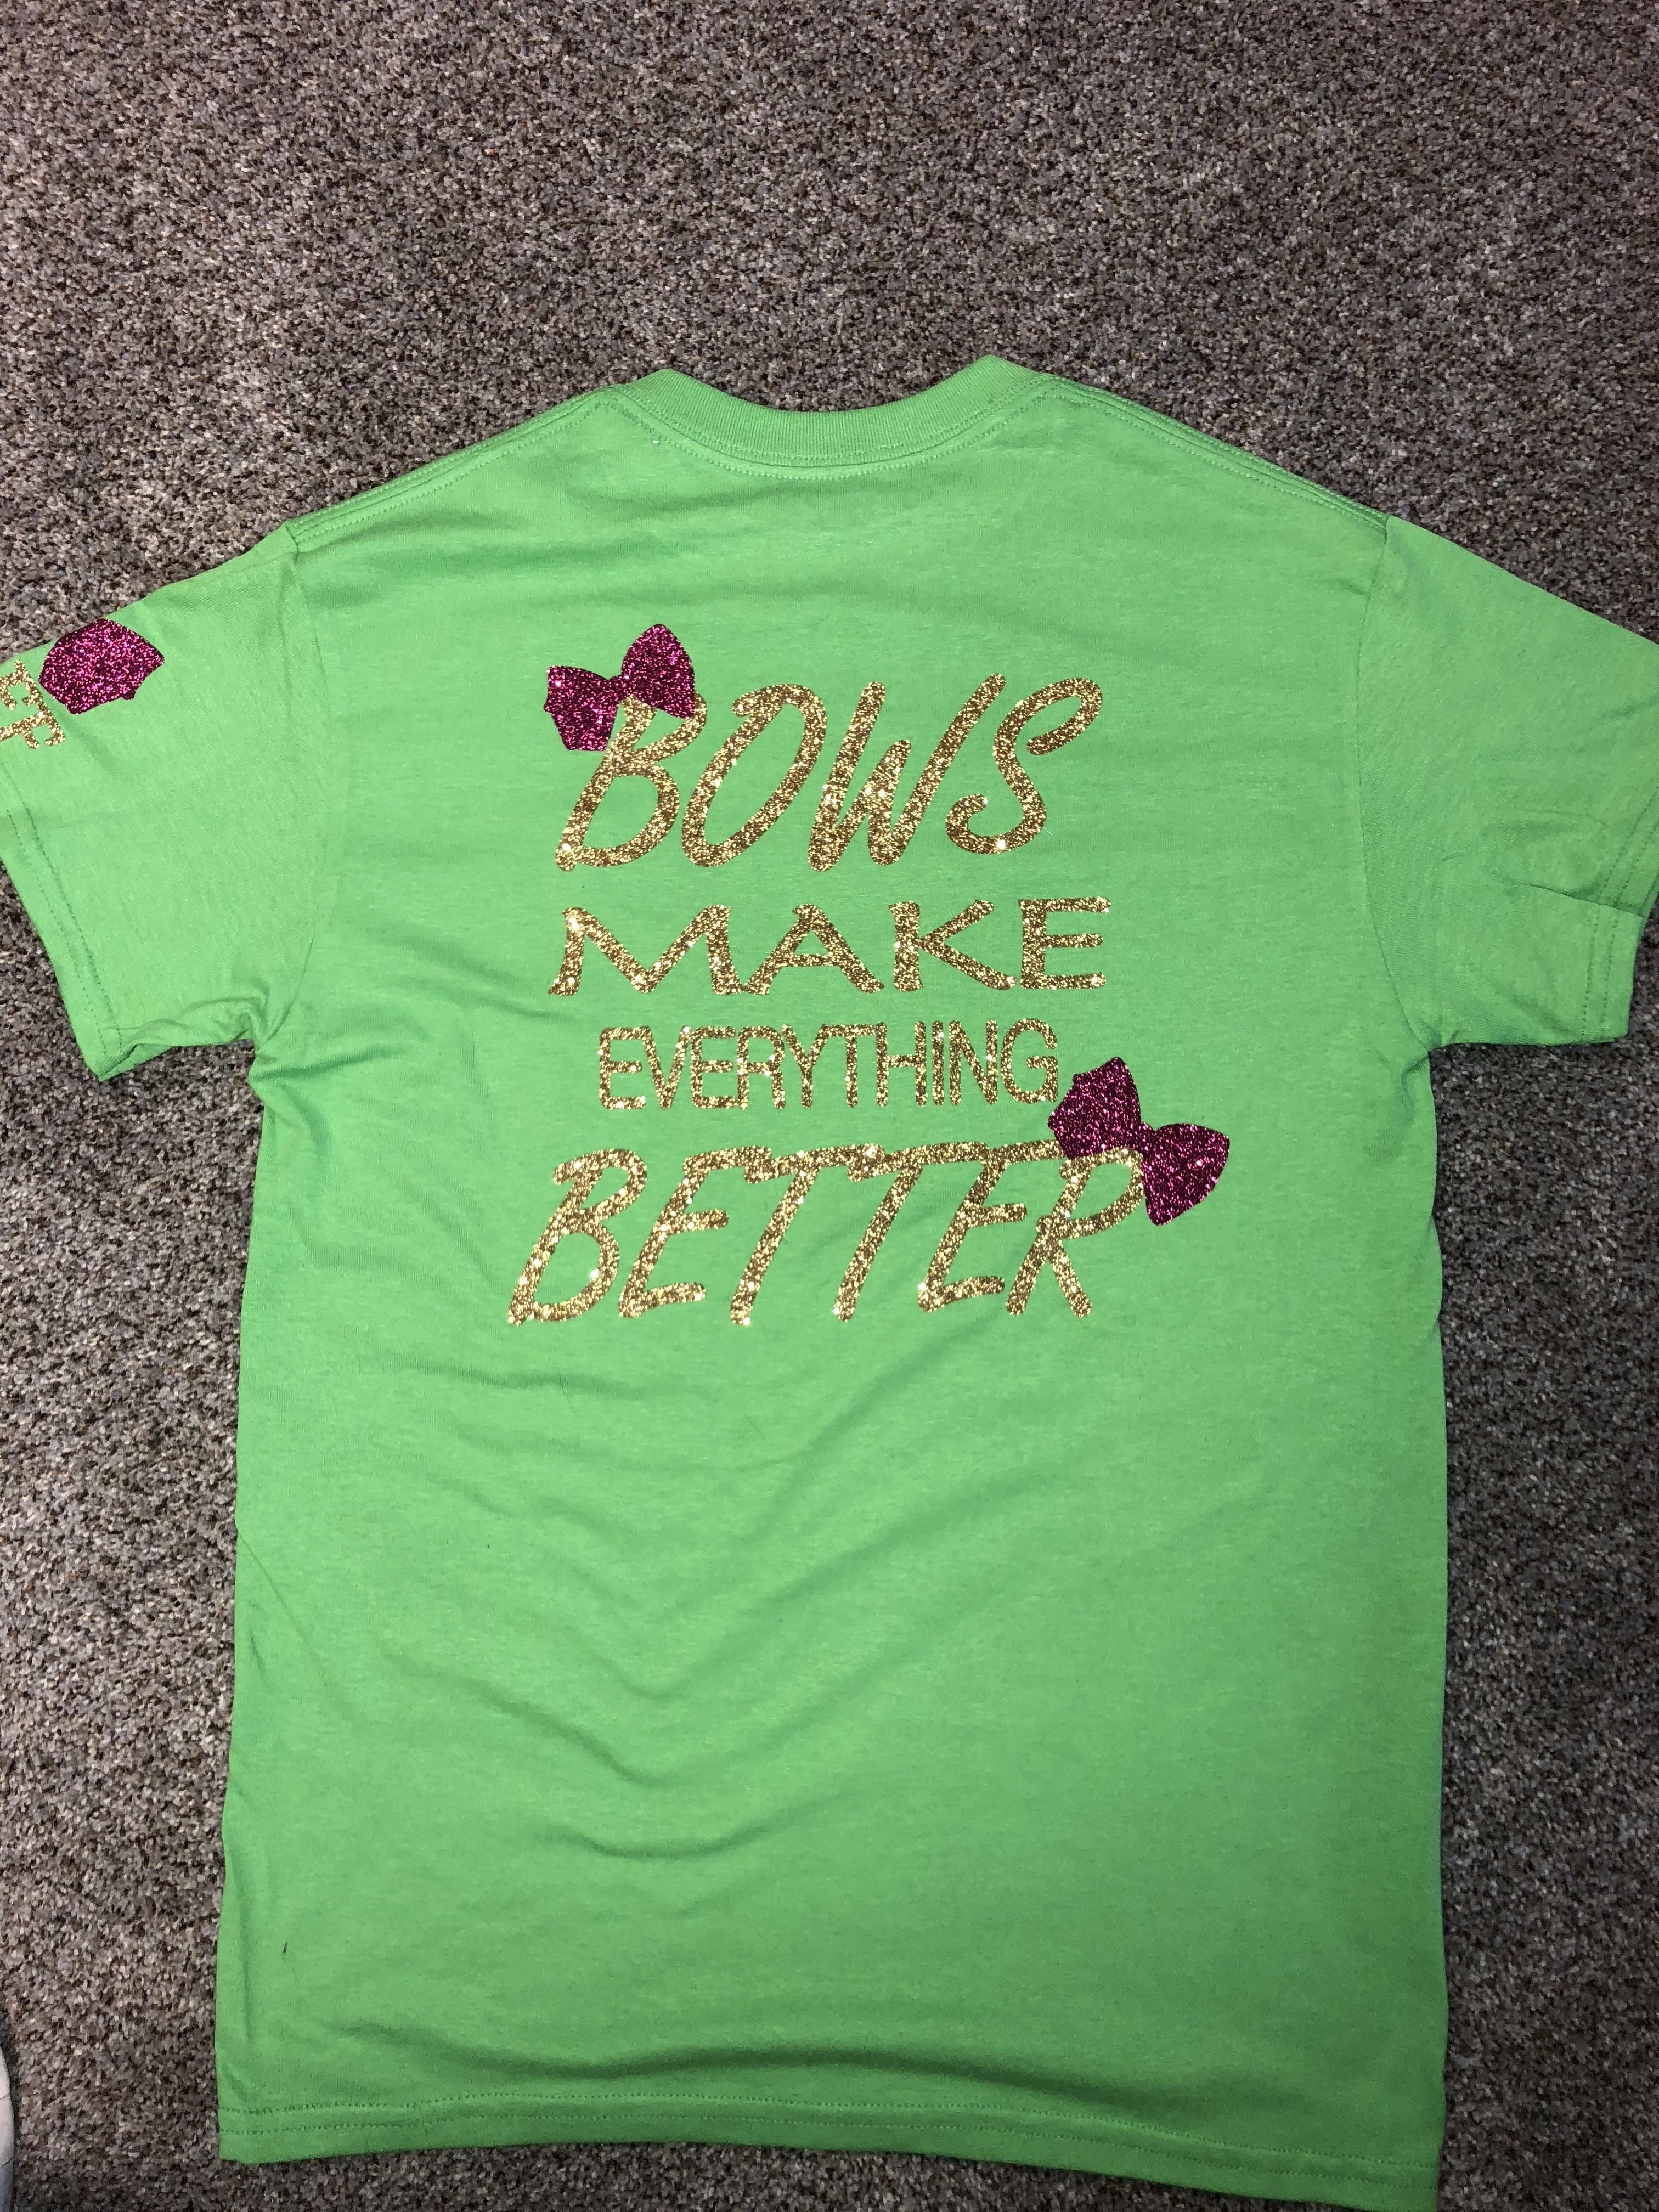 Back Of Staff Shirts With Jojo Siwa Sayings For Birthday Party